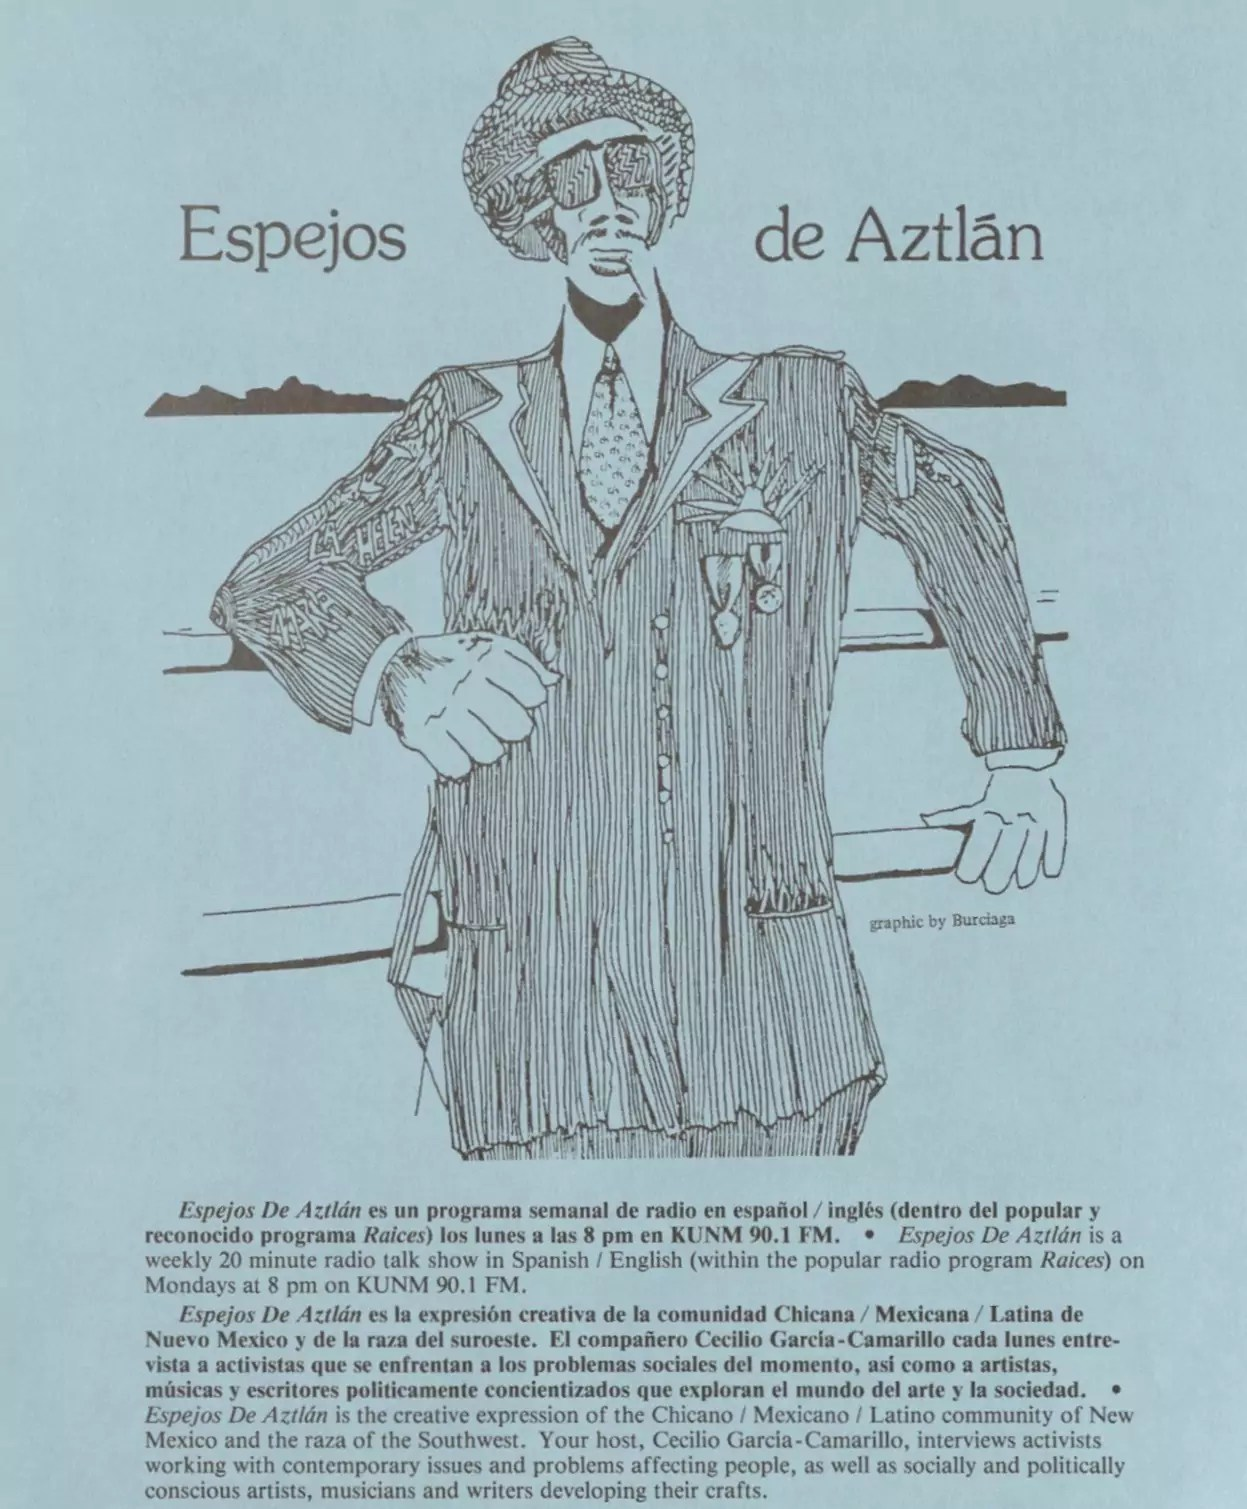 """Illustration featuring someone in a hat walking, with a blue backdrop and label """"Espejos de Aztlán""""."""